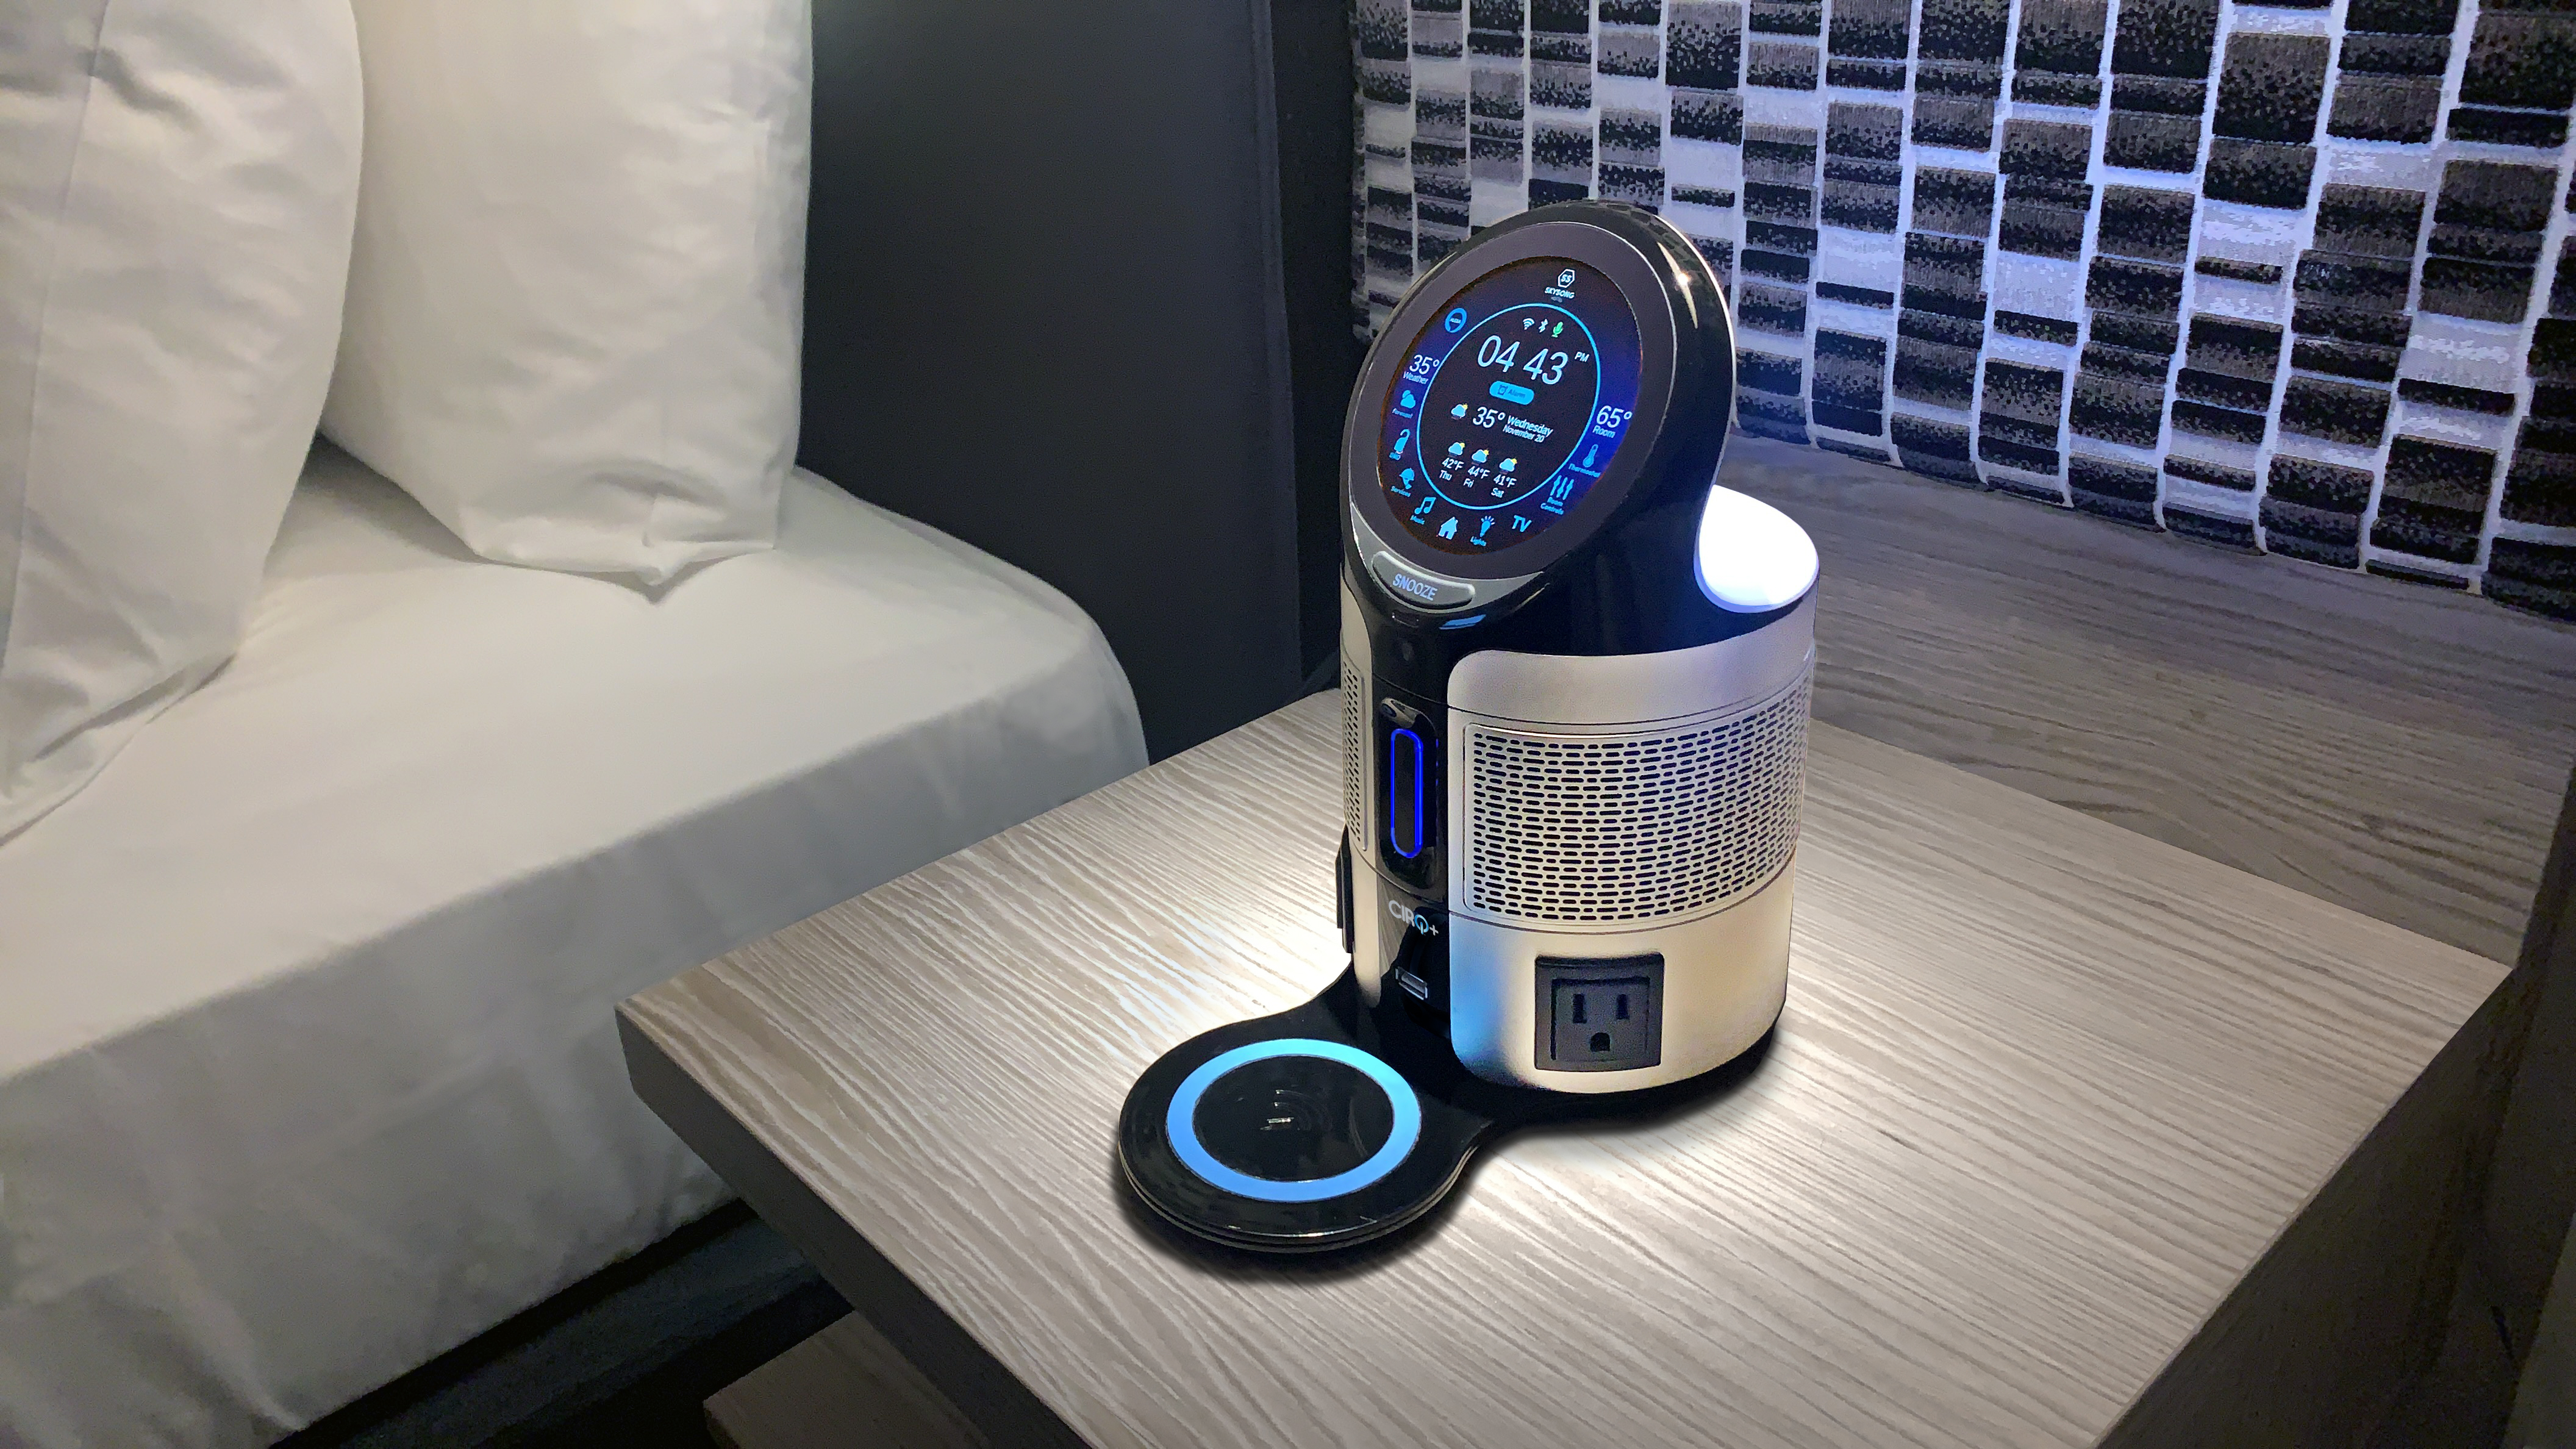 When guests enter their hotel rooms, they can speak commands to the Cirq+ supported voice assistant selected by the hotel (Amazon Alexa, Google Assistant or IBM Watson) to control room temperature, lighting and the TV.